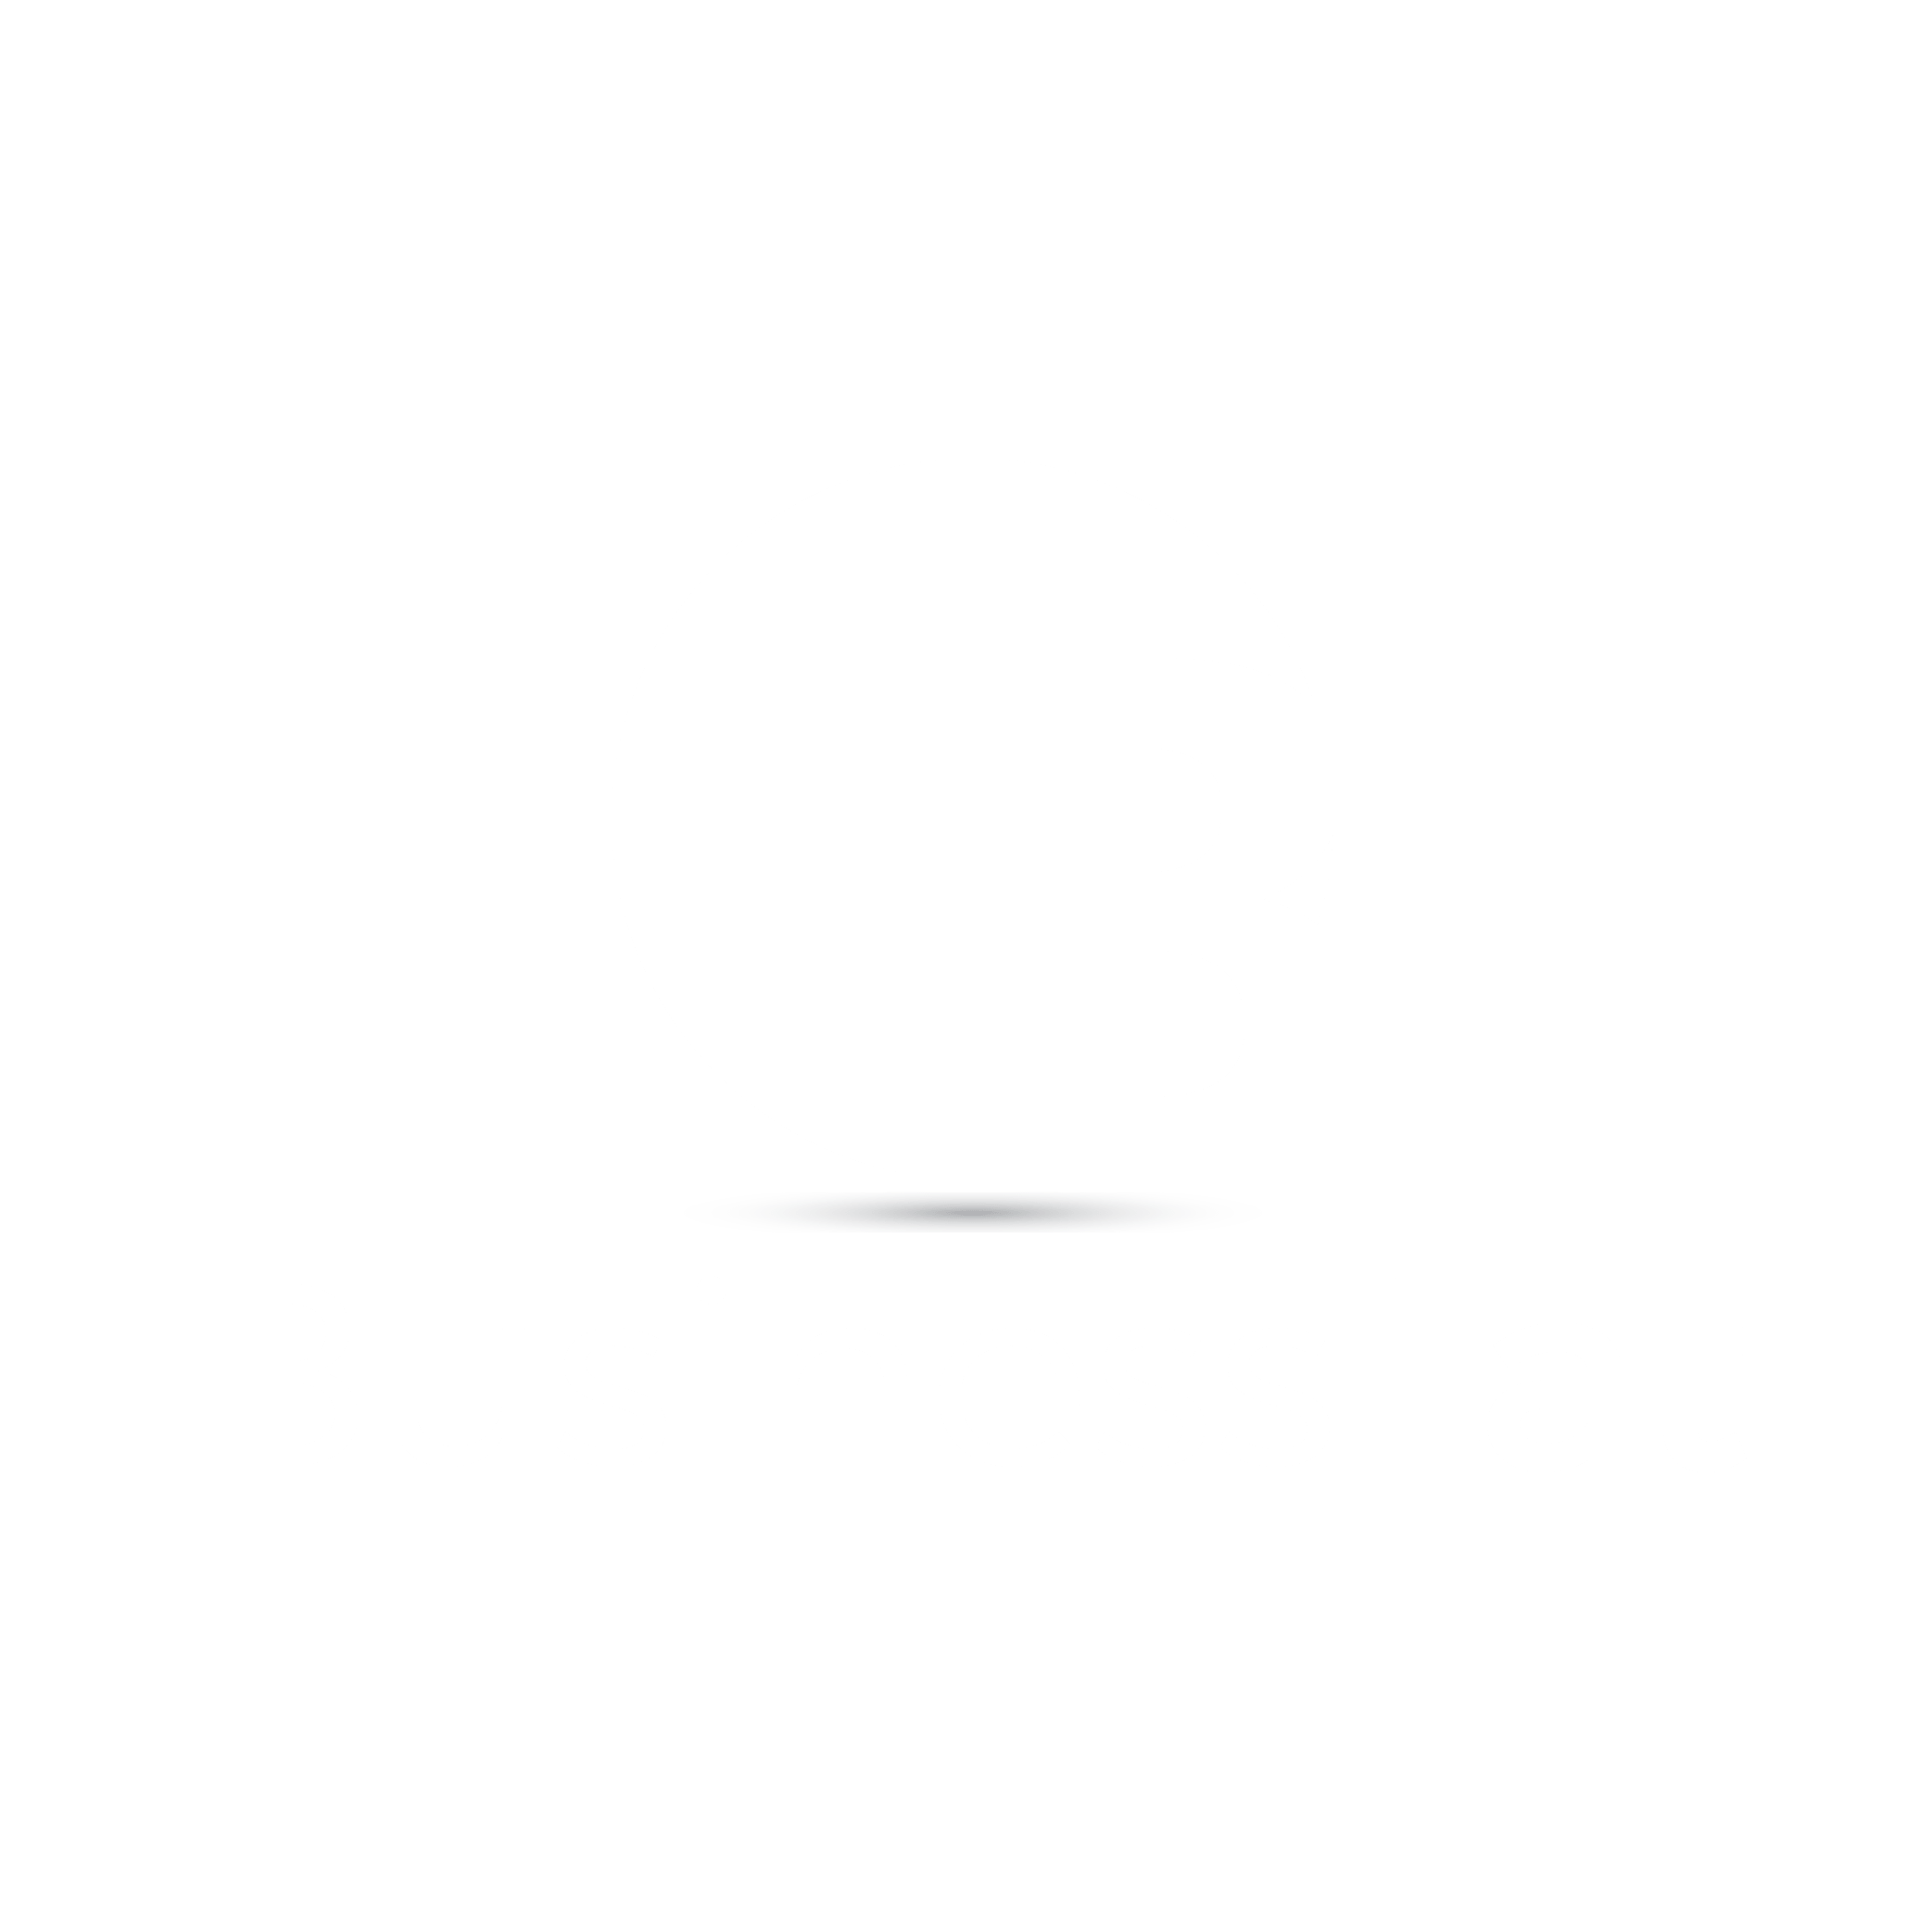 Businesslat